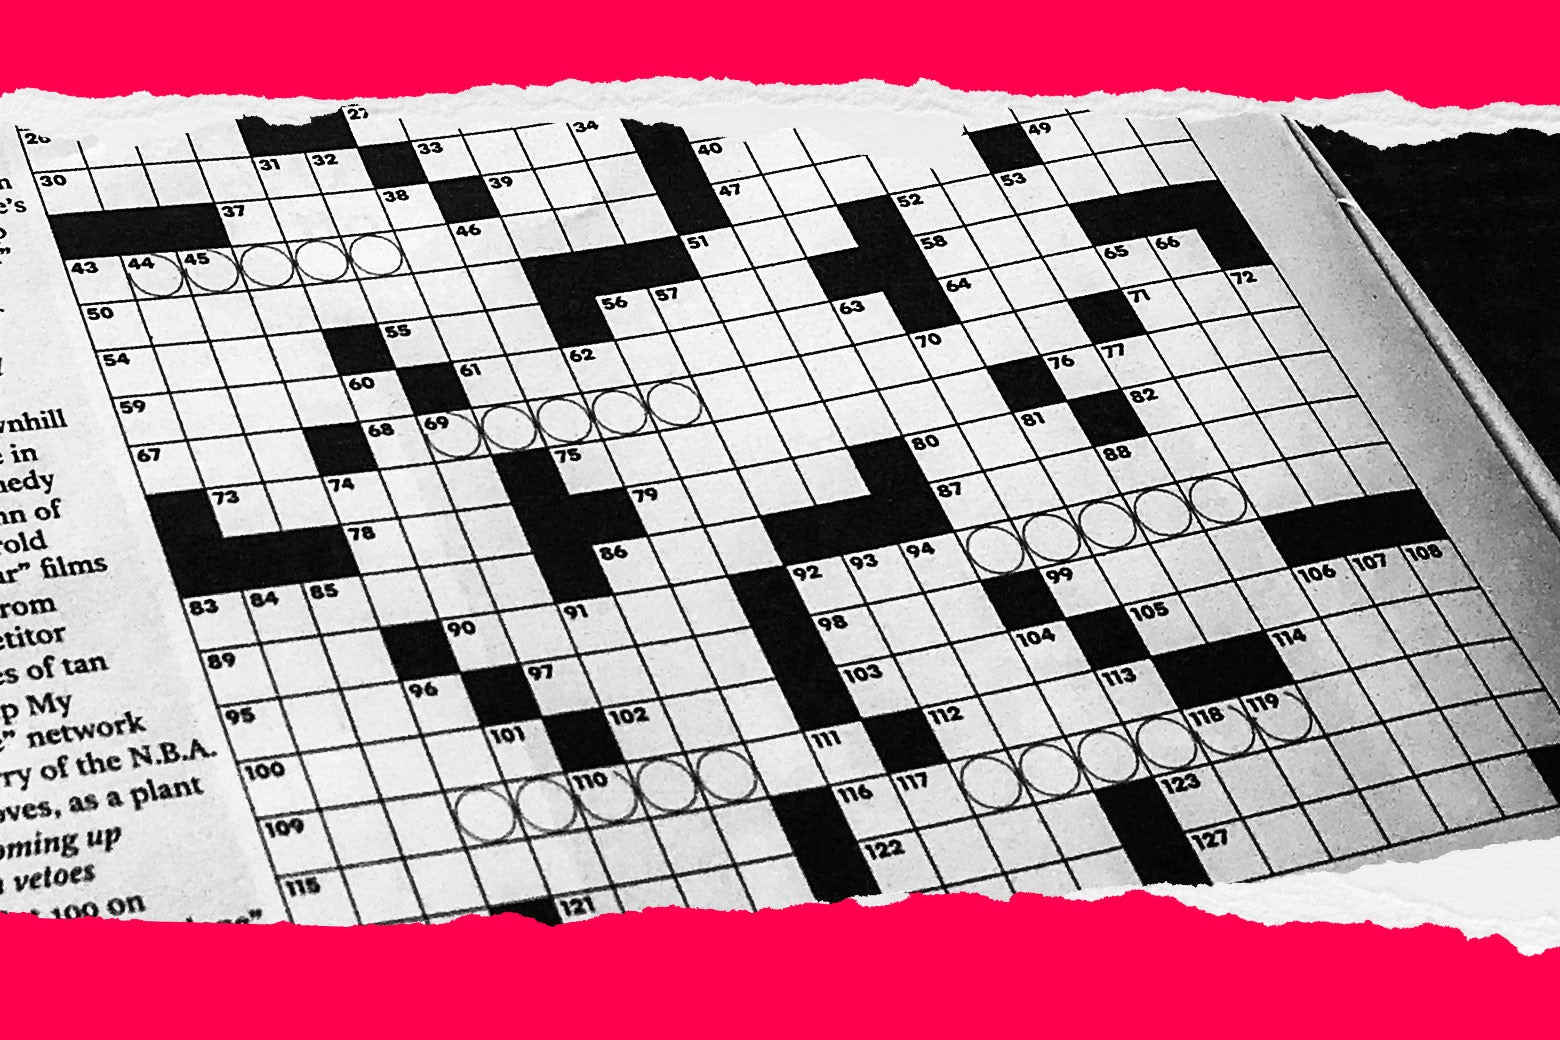 photograph regarding Ny Times Sunday Crossword Printable called The NYT crossword puzzles seek the services of of an ethnic slur states a whole lot